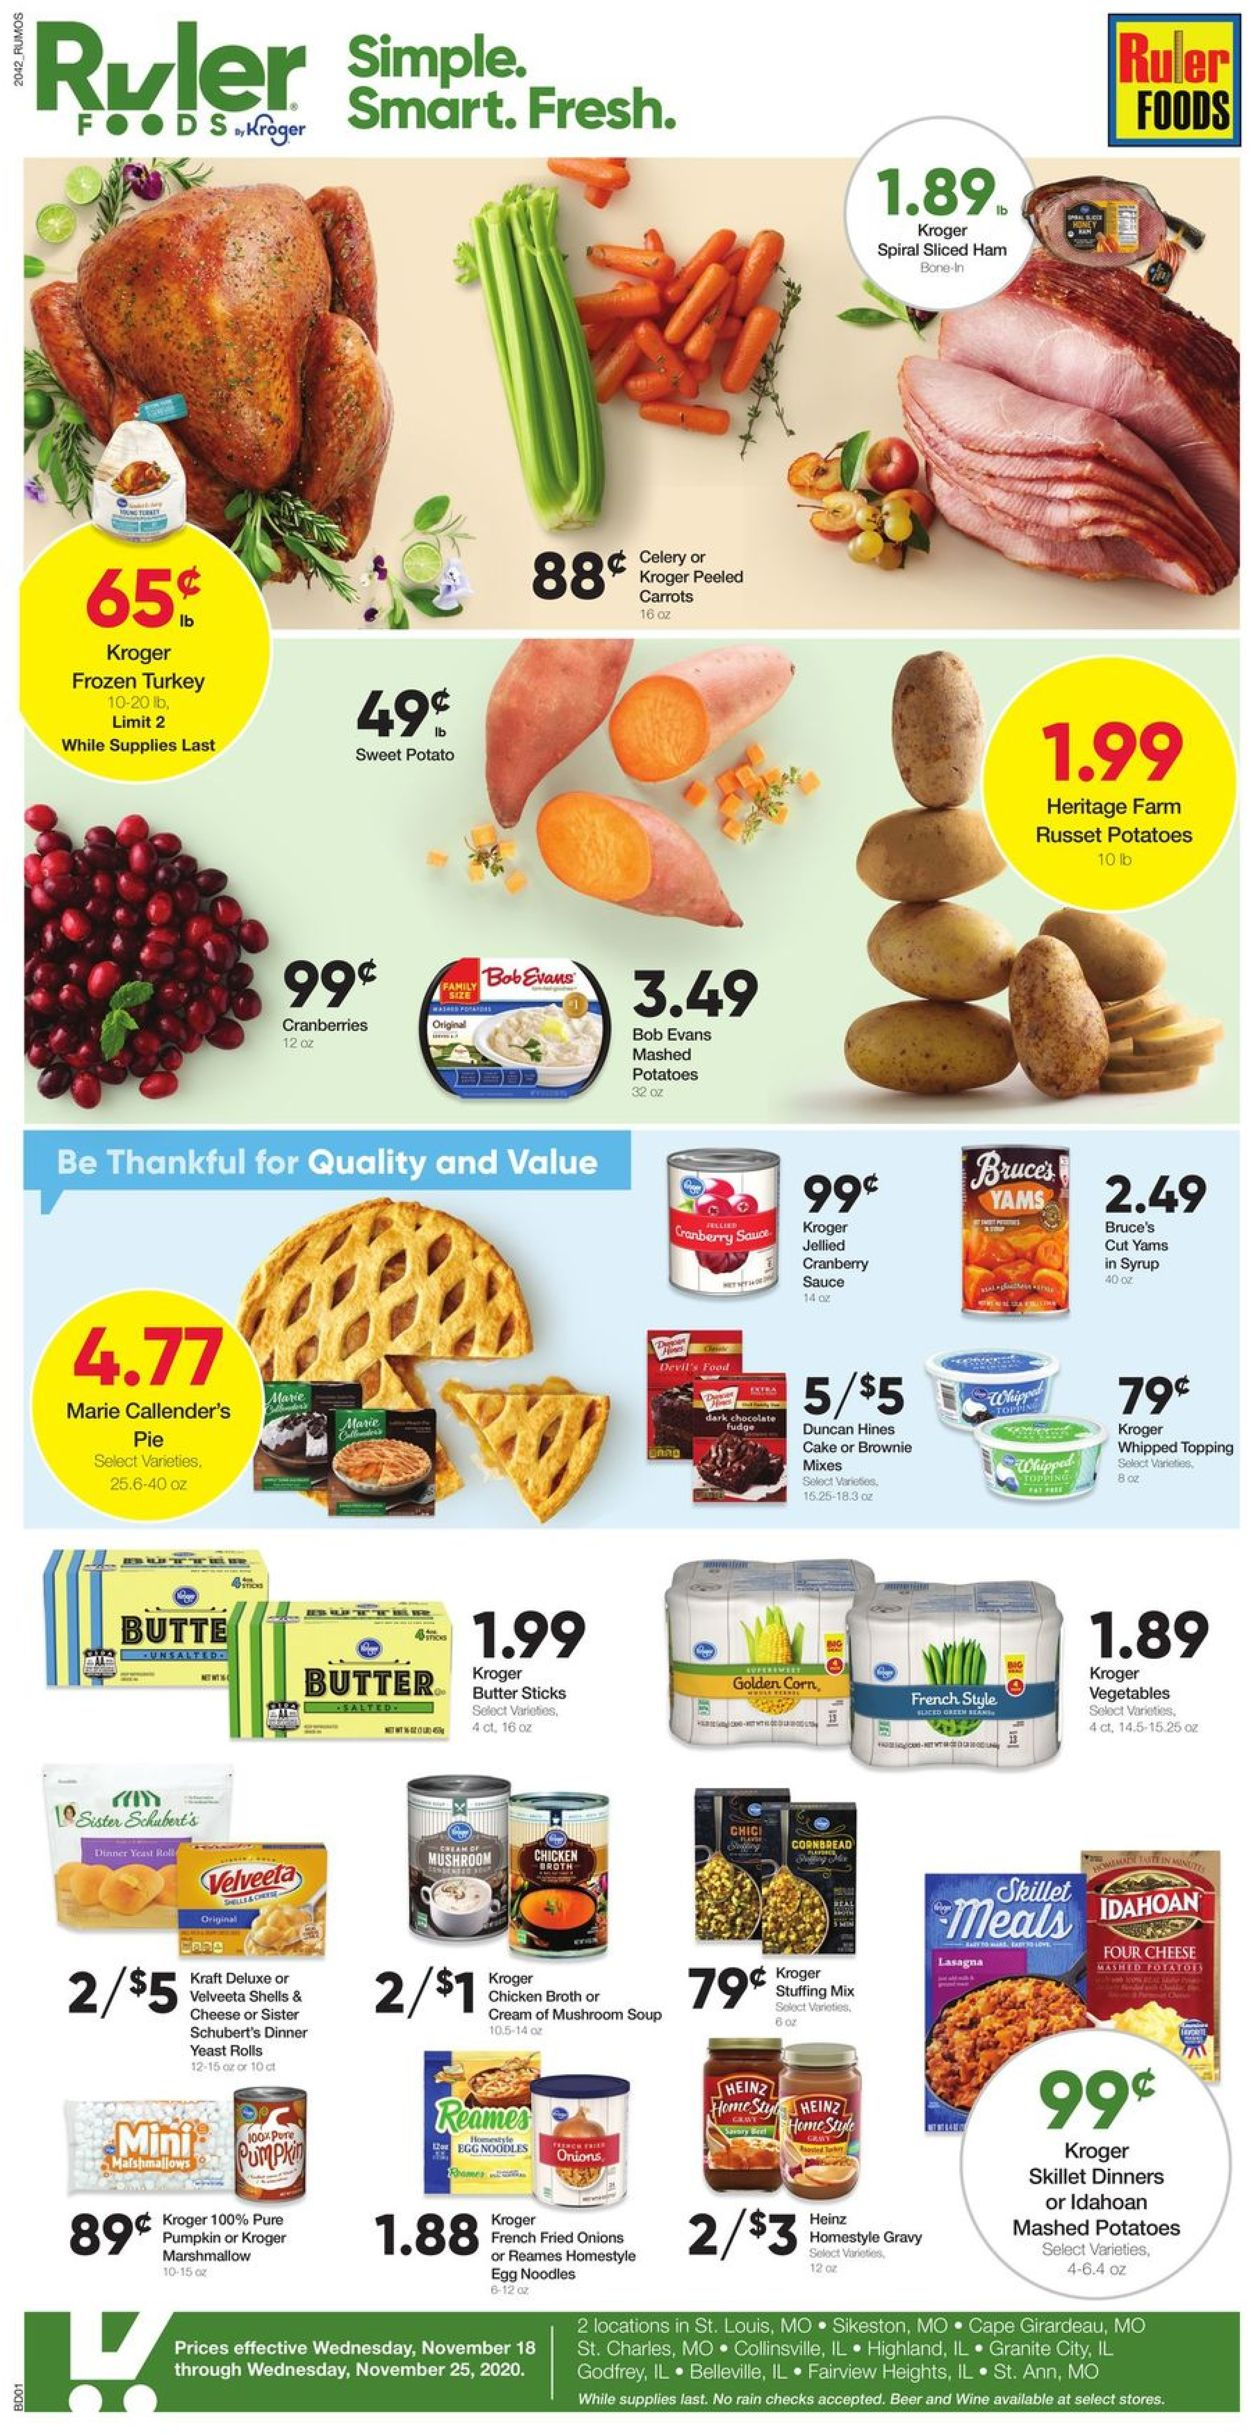 Ruler Foods Current Weekly Ad 11 18 11 25 2020 Frequent Ads Com